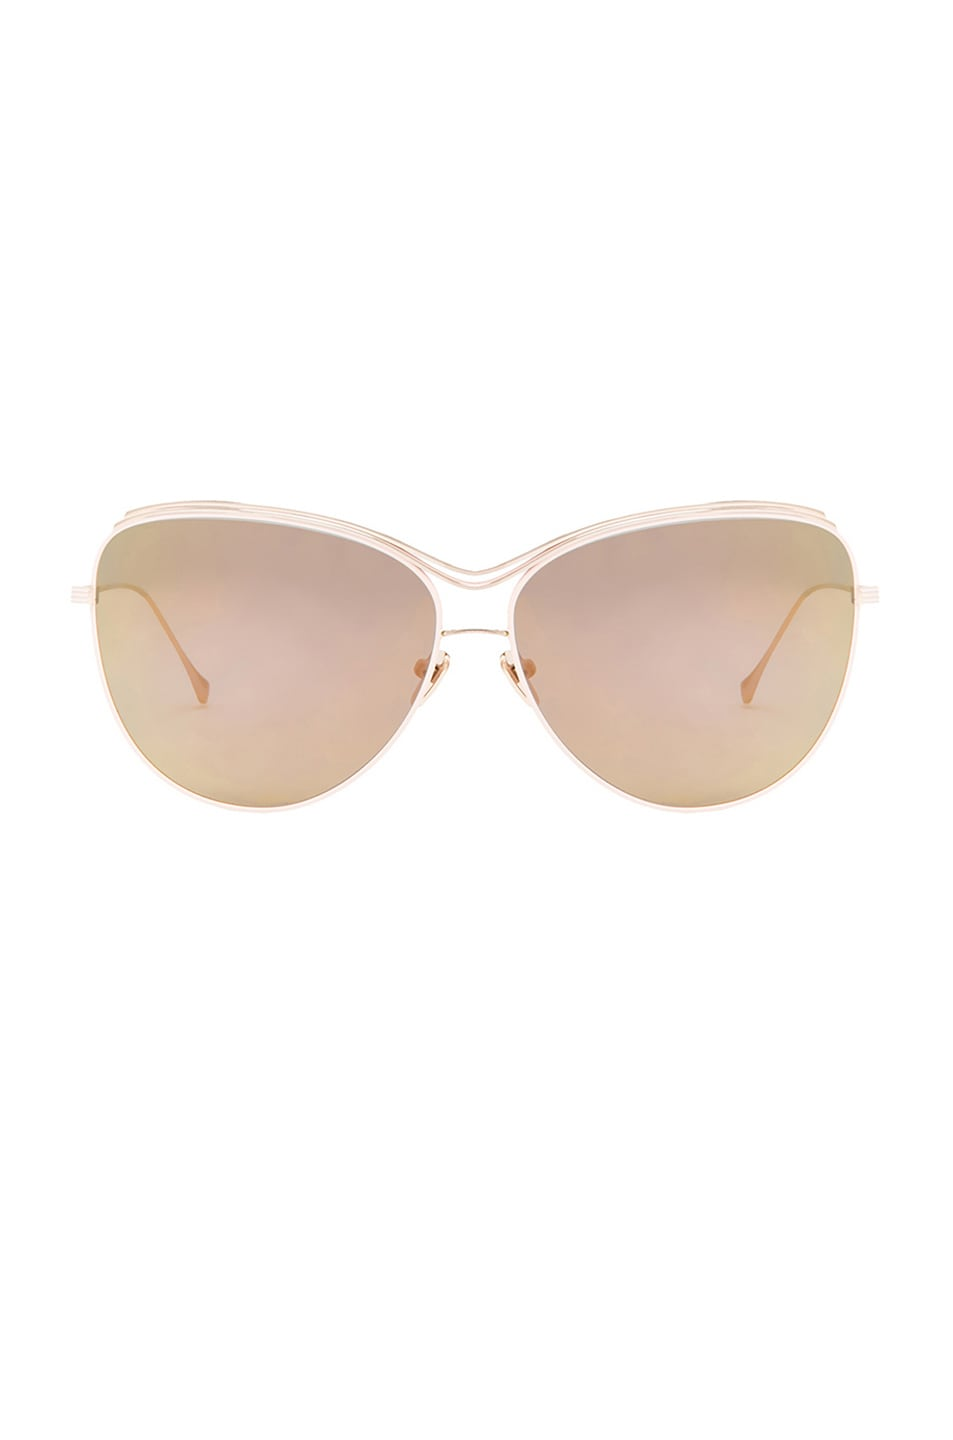 Image 1 of Dita Custom Starling Sunglasses in Pink & Light Gold Mirror